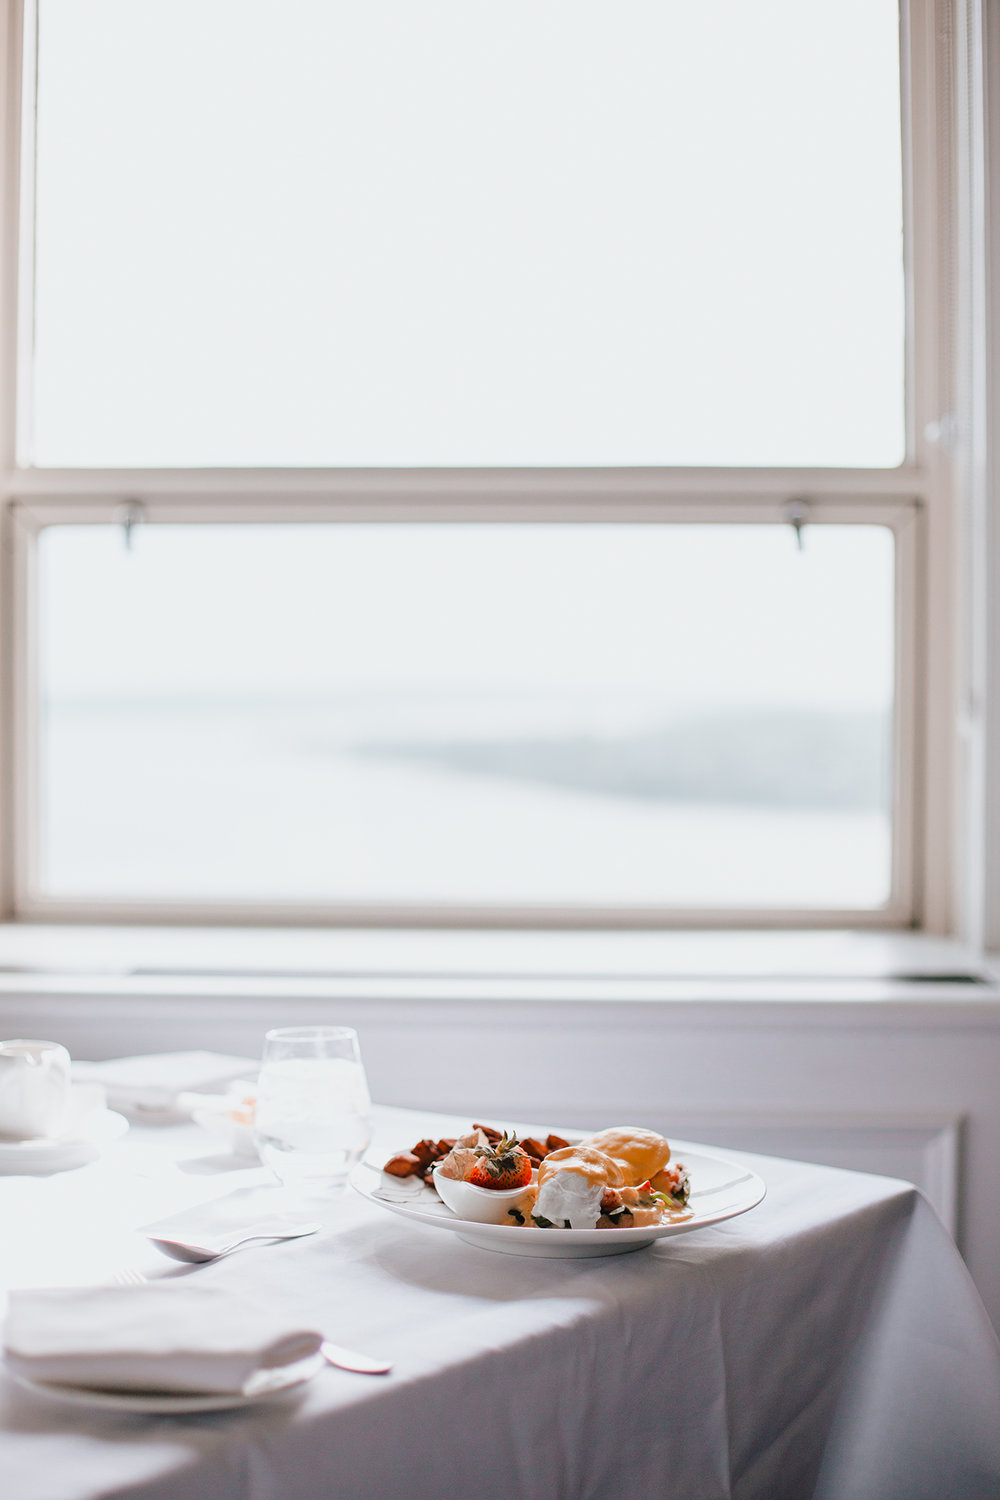 Favourite moment: Early morning breakfast straight to my room. The Lobster Benedictine was simply DIVINE and made me feel like royalty with an amazing view. It was the perfec getaway trip for a couple without going to far from Montreal.